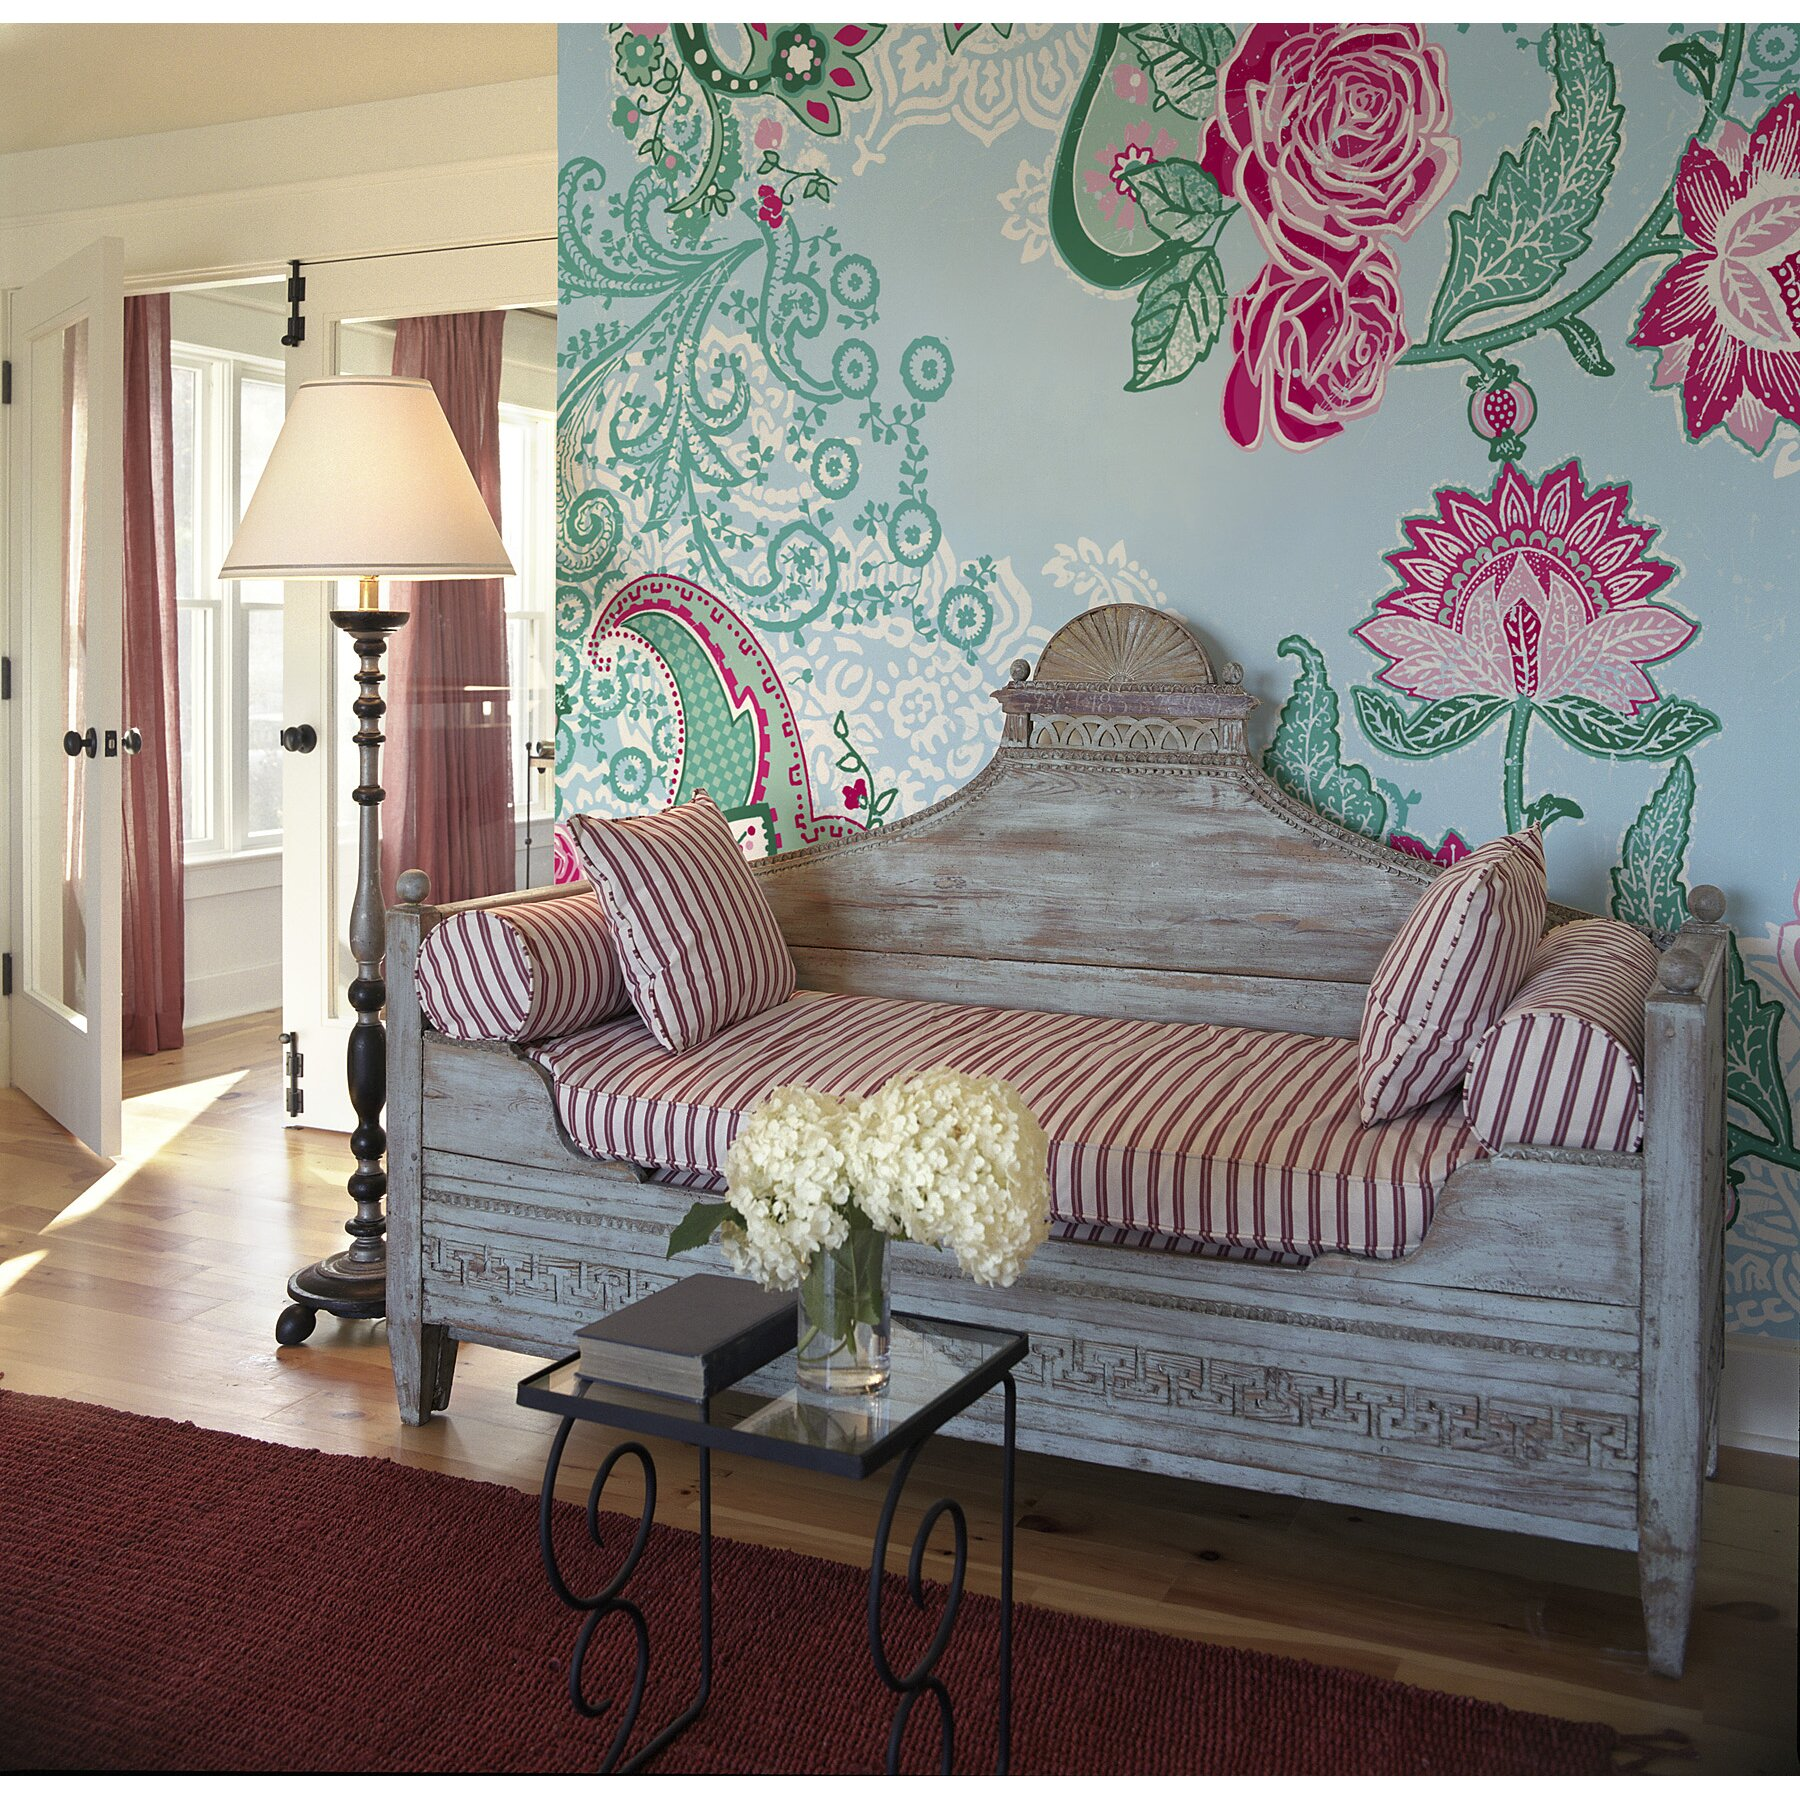 Brewster home fashions komar paisley rose wall mural for Brewster birch wall mural